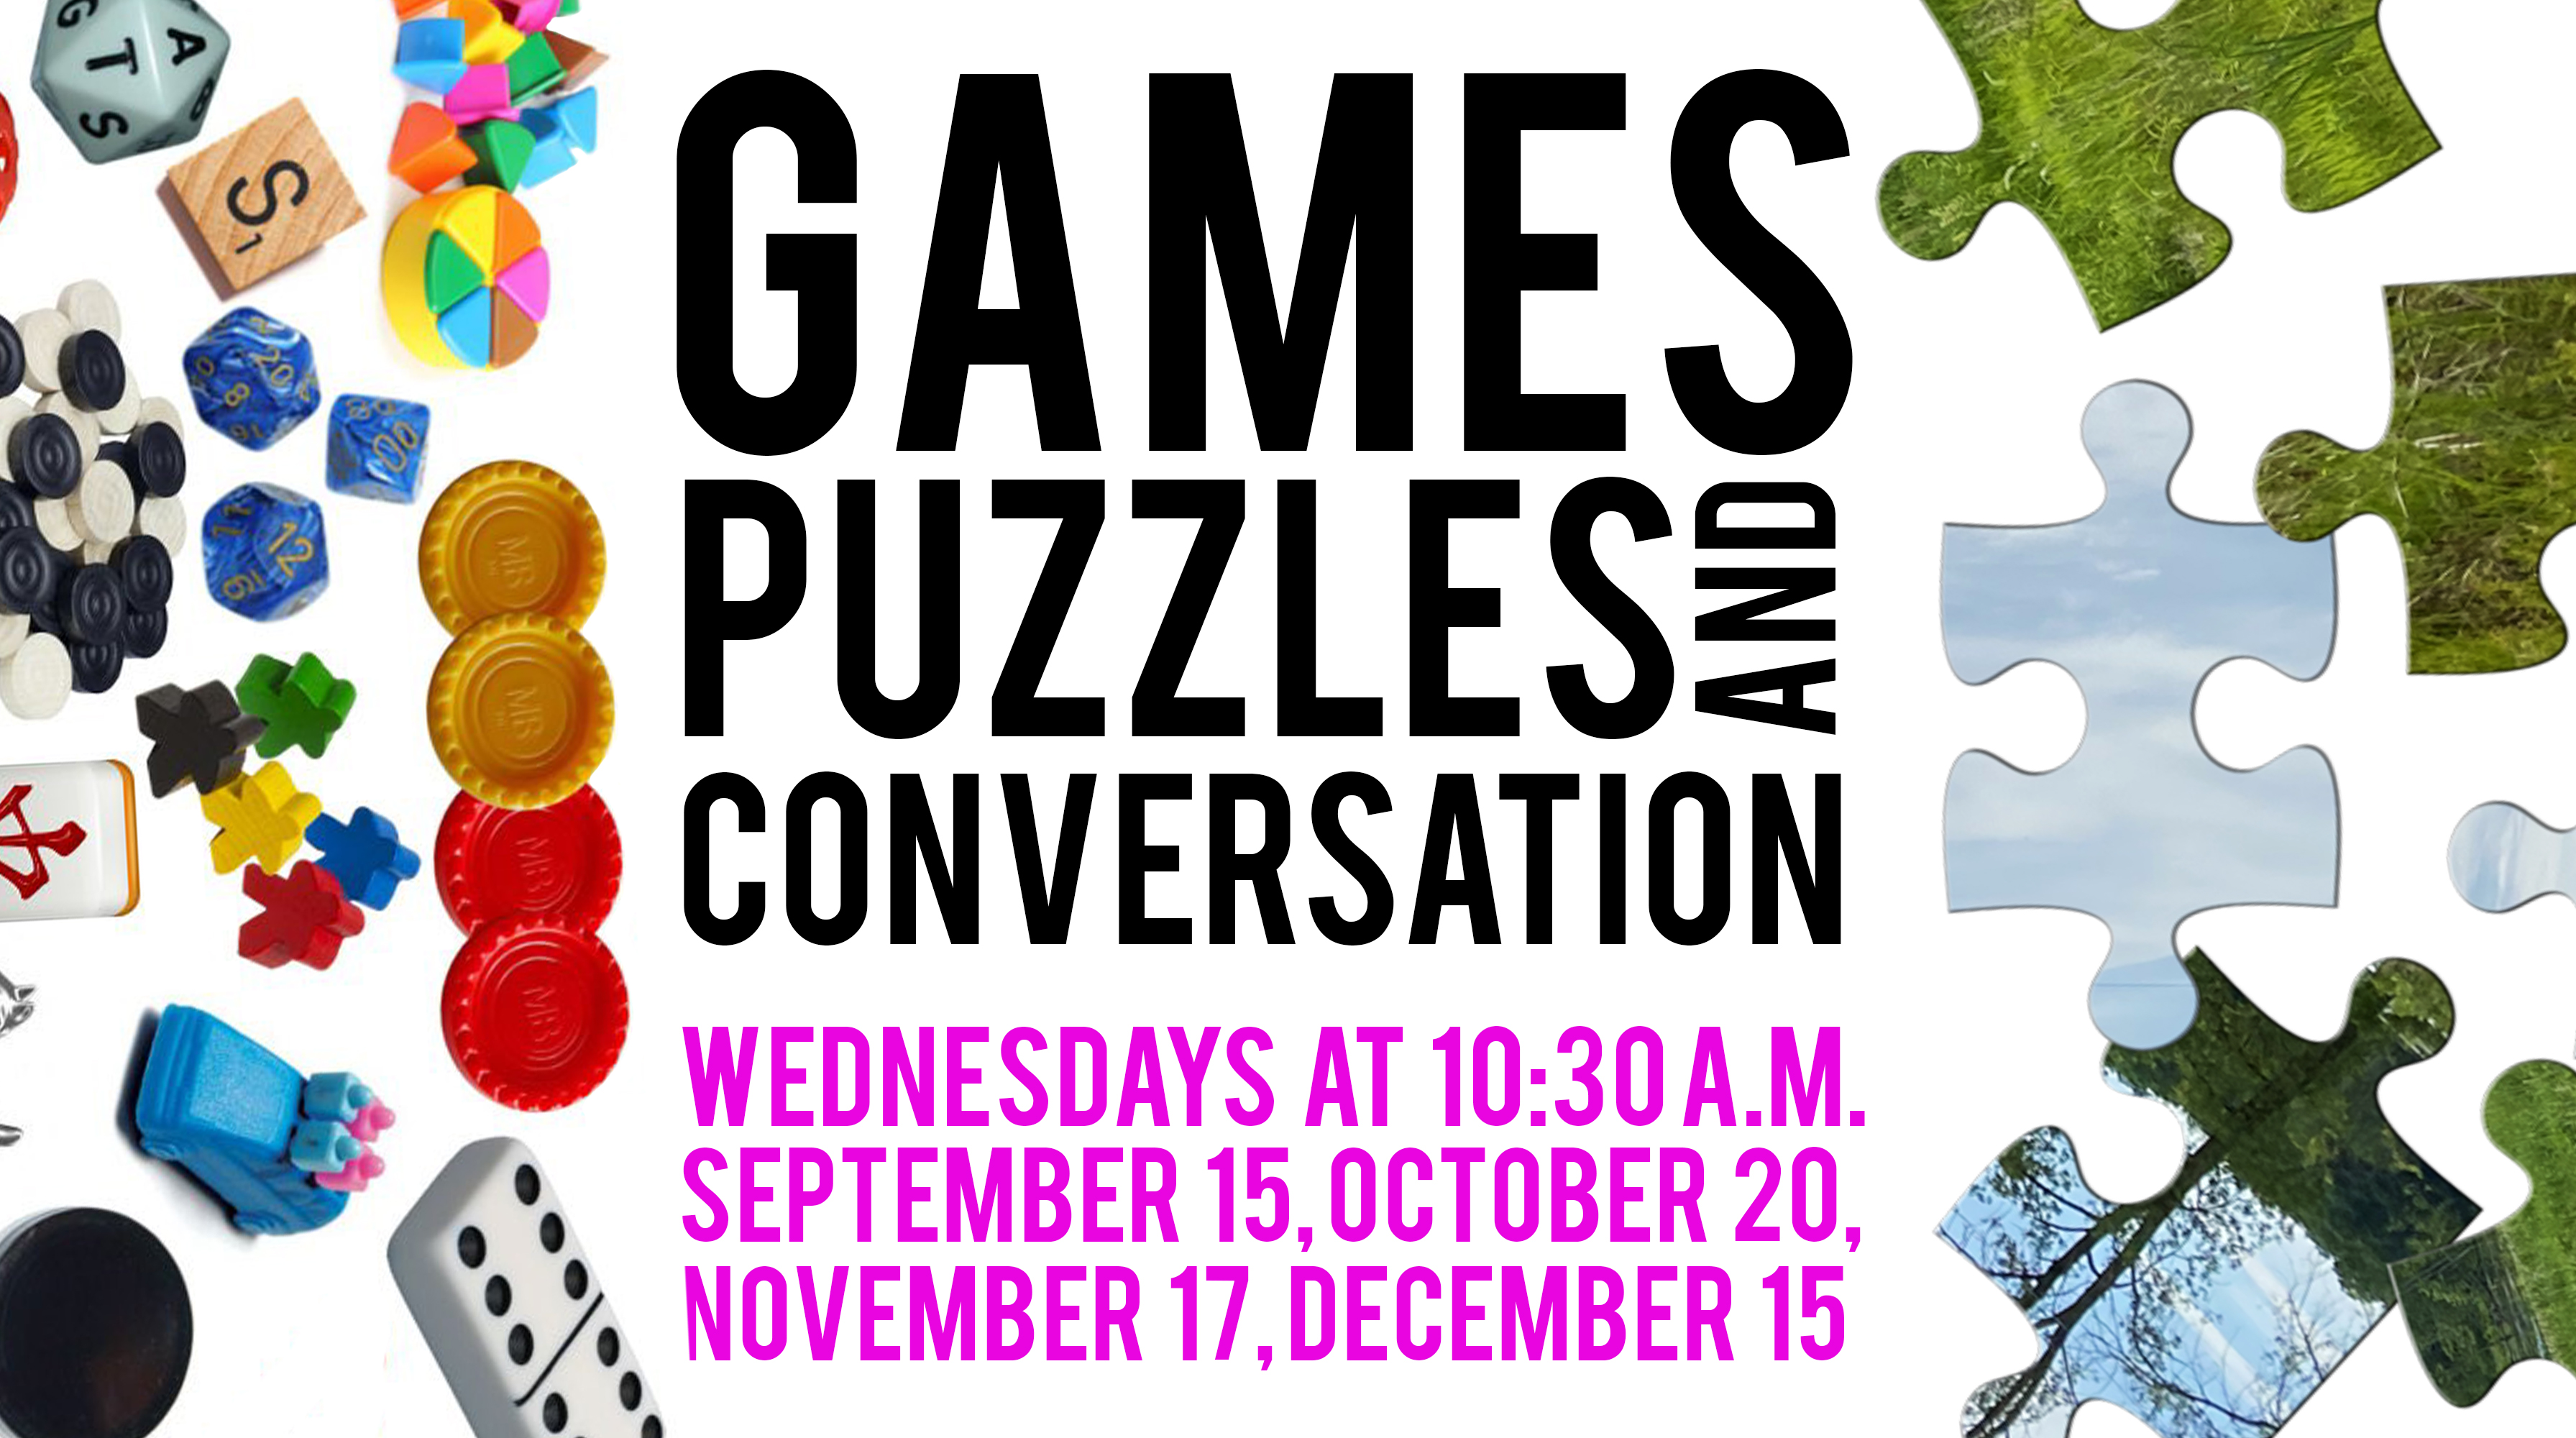 Games, Puzzles, and Conversations